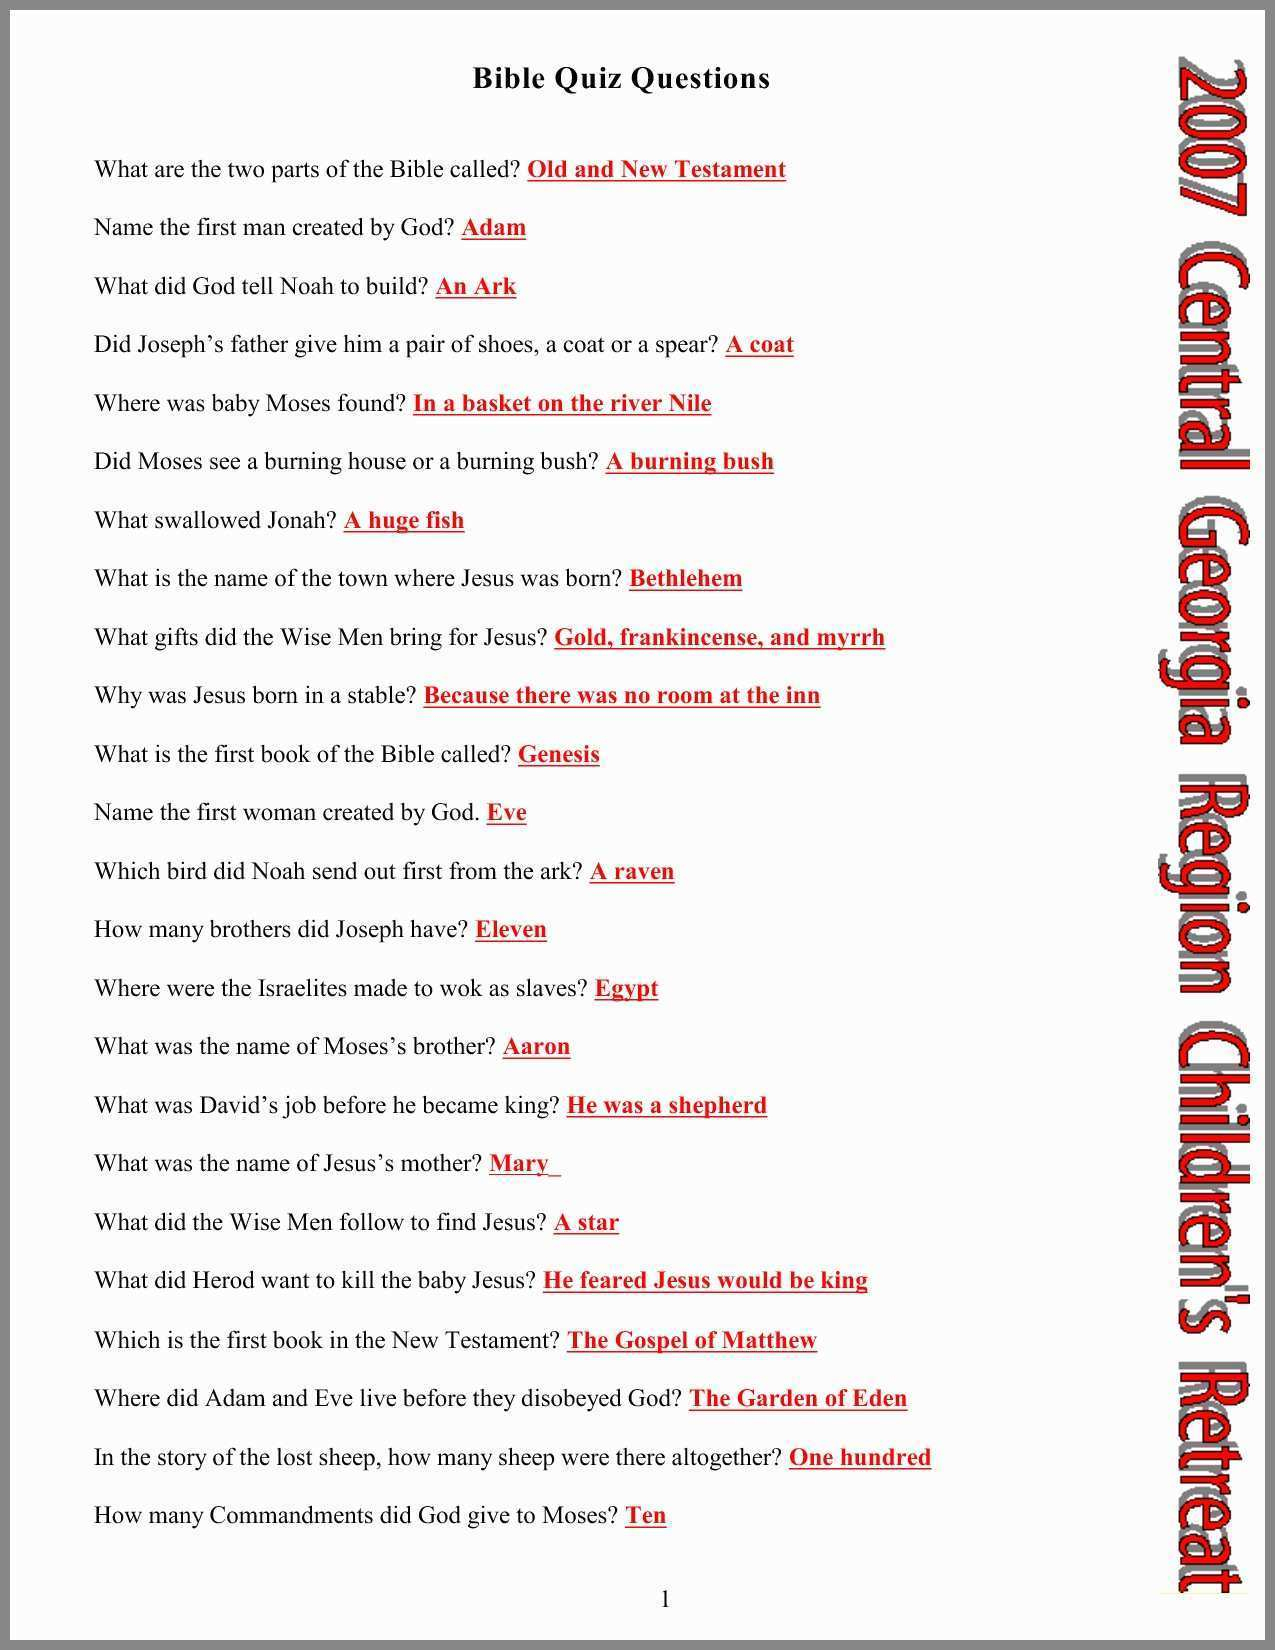 Bible Trivia And Answers Best Of Printable Bible Coloring Pages - Free Bible Questions And Answers Printable